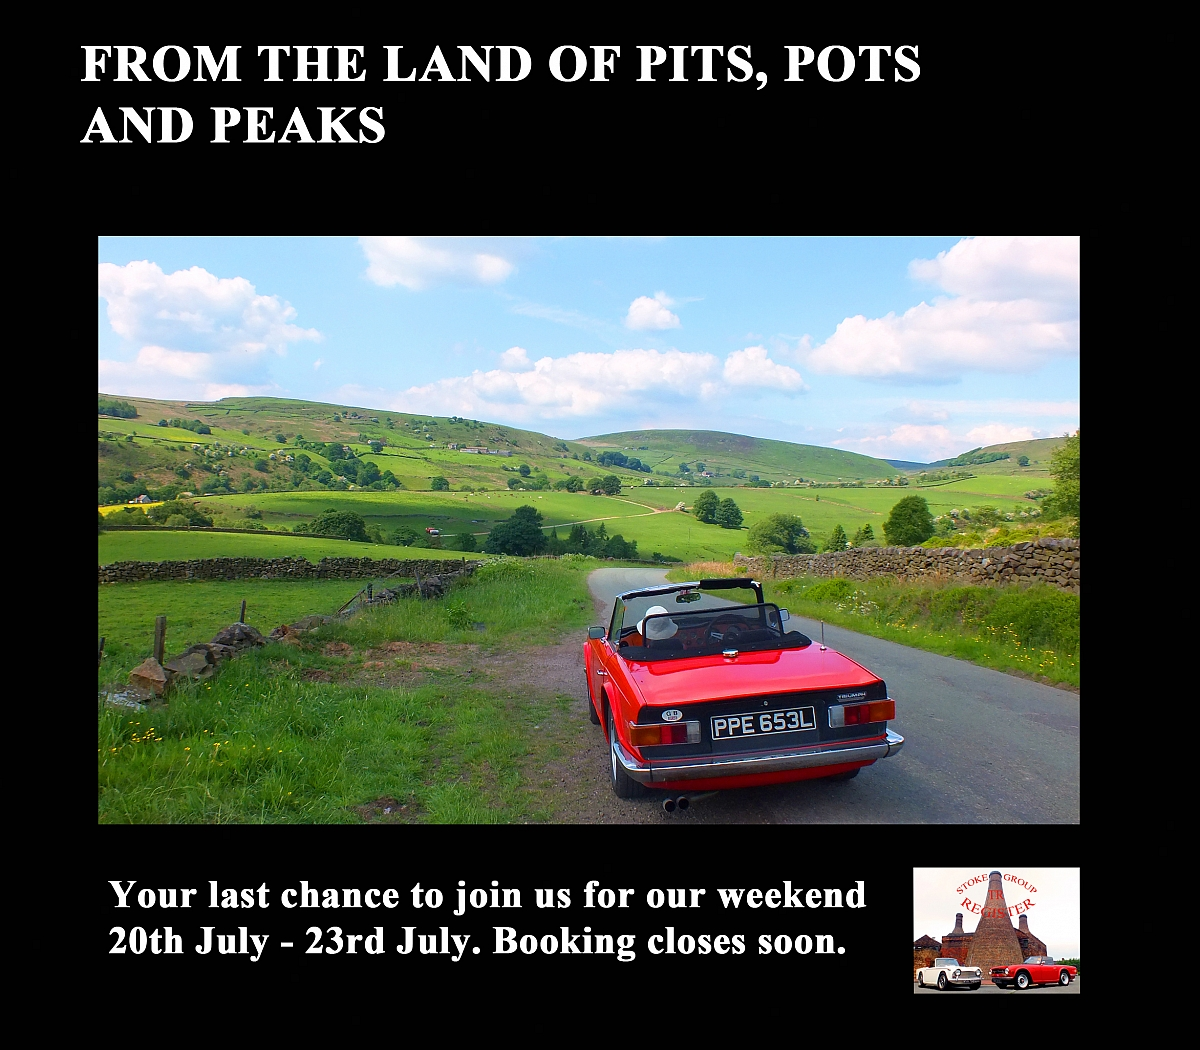 Stoke Group Pits, Pots and Peak Weekend. Don't miss this one, booking closing soon!